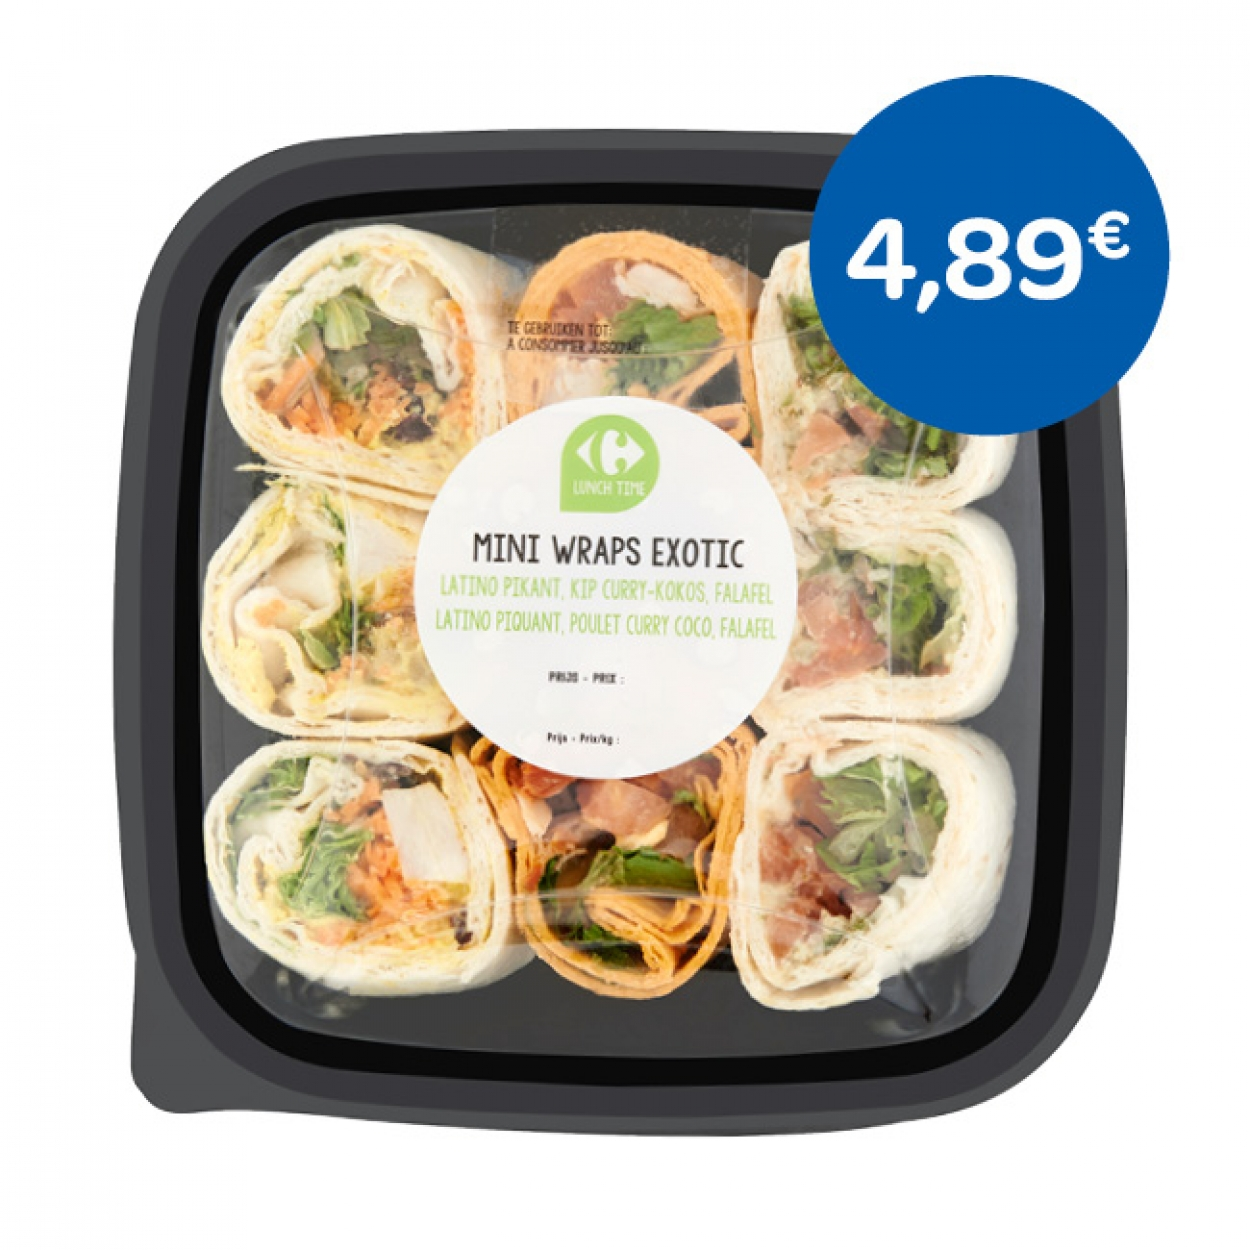 Mini wraps exotic Carrefour